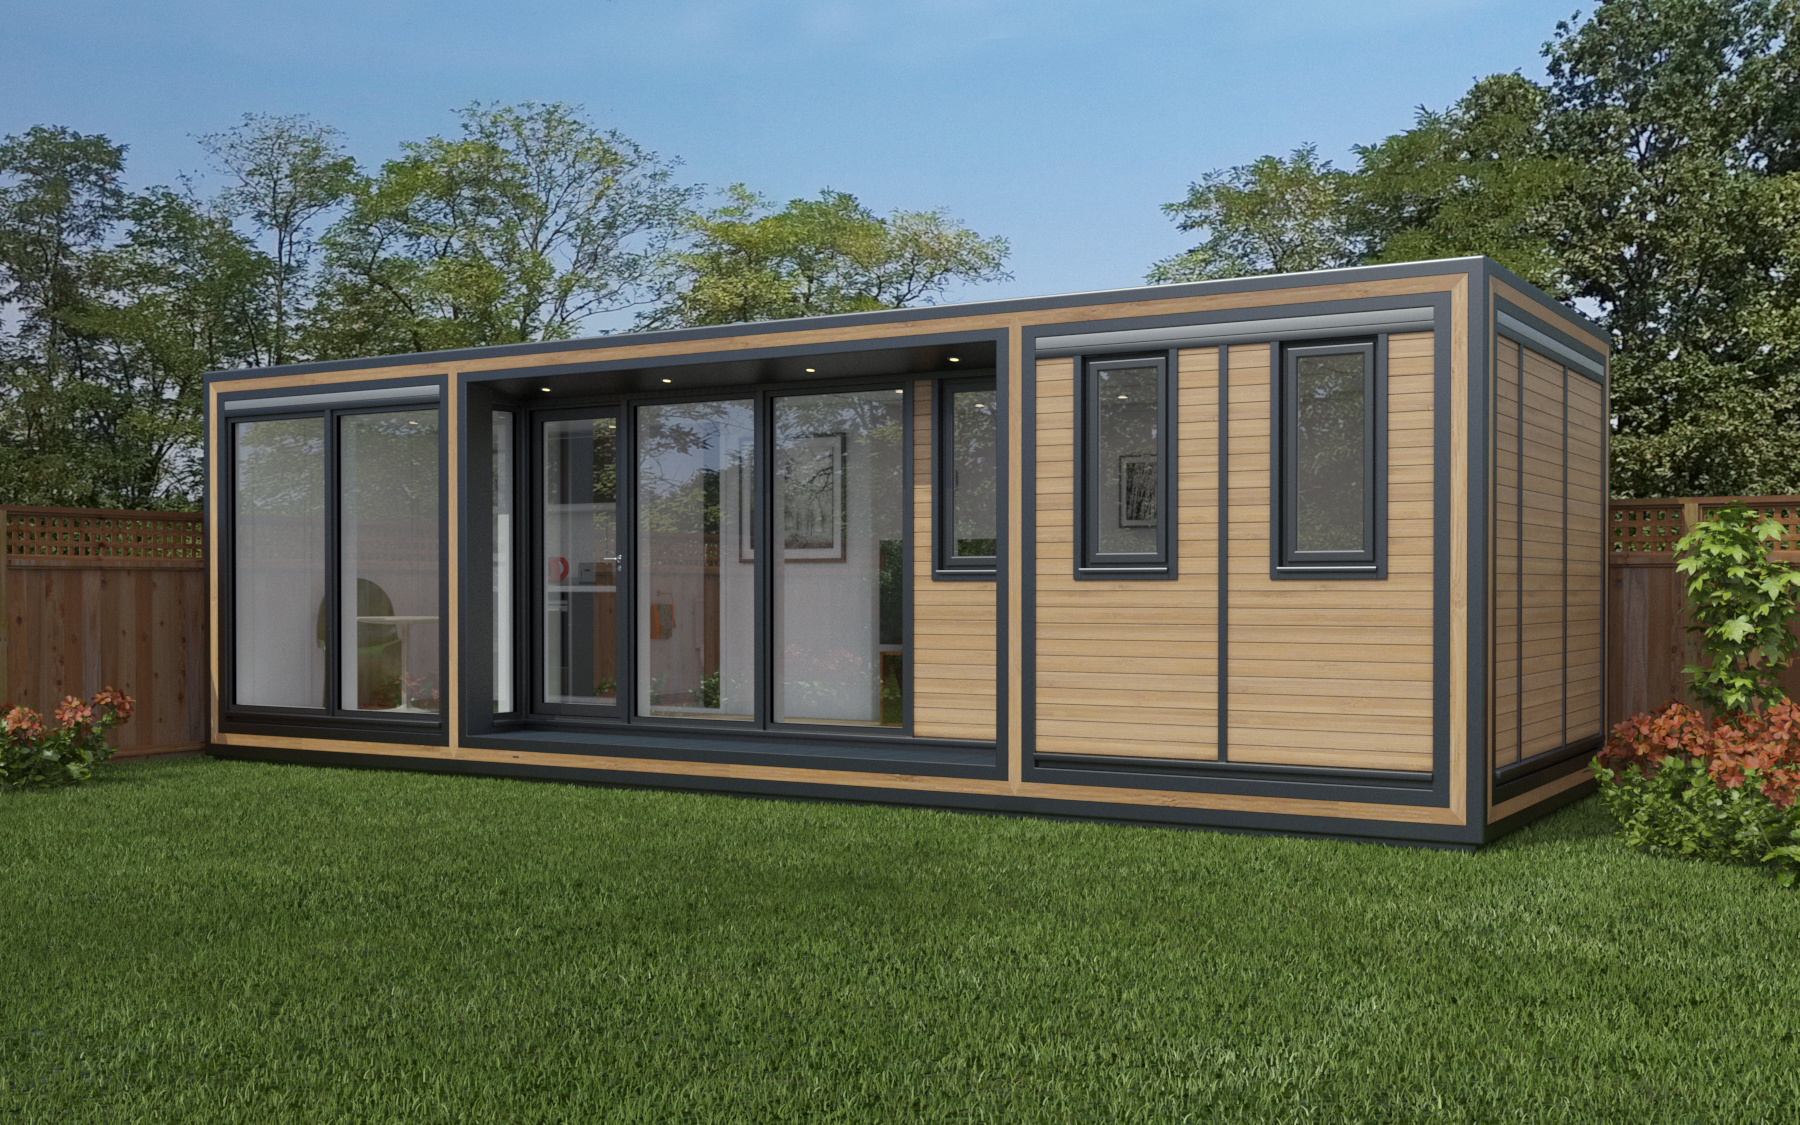 ZEDBOX 825  (8 x 2.5)  Internal Size: 8543 x 2720  External Size: 9013 x 3190  Bed Options: Single or Double  Kitchen Options: Micro Kitchen or Kitchen  Wet Room Options: Yes  Portico: Yes  Price:  £36,000    Optional Extras    Request Zedbox Catalogue